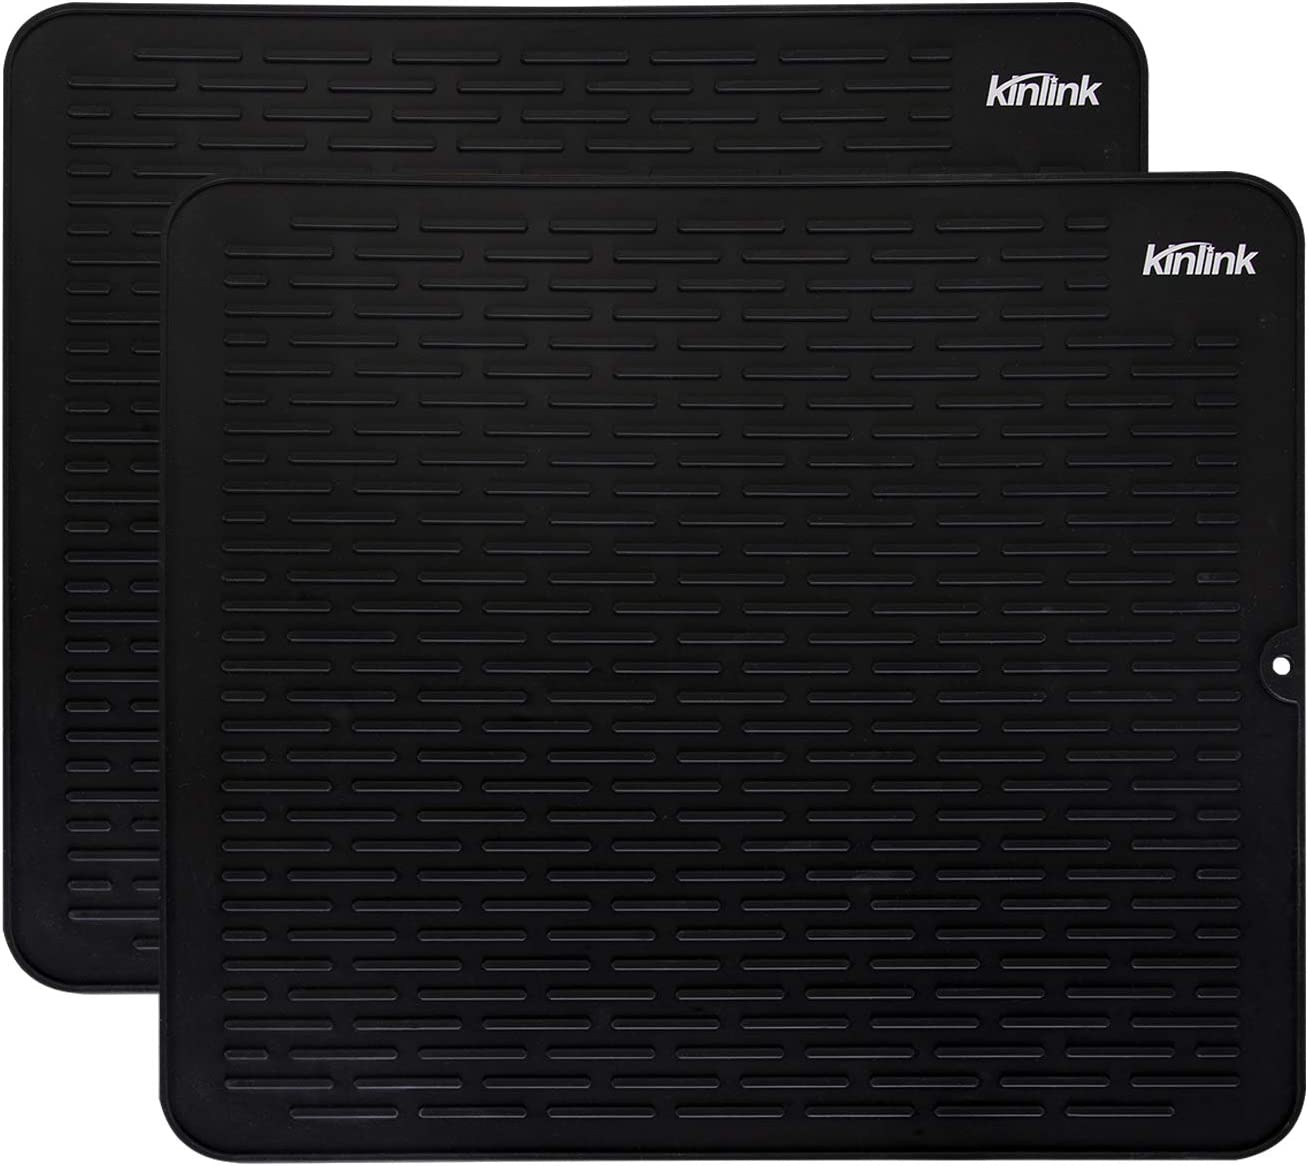 "Kinlink 2 Pack Silicone Dish Drying Mats - 17.7"" x 15.7"" Large Dishwasher Safety Counter Pad, Black"